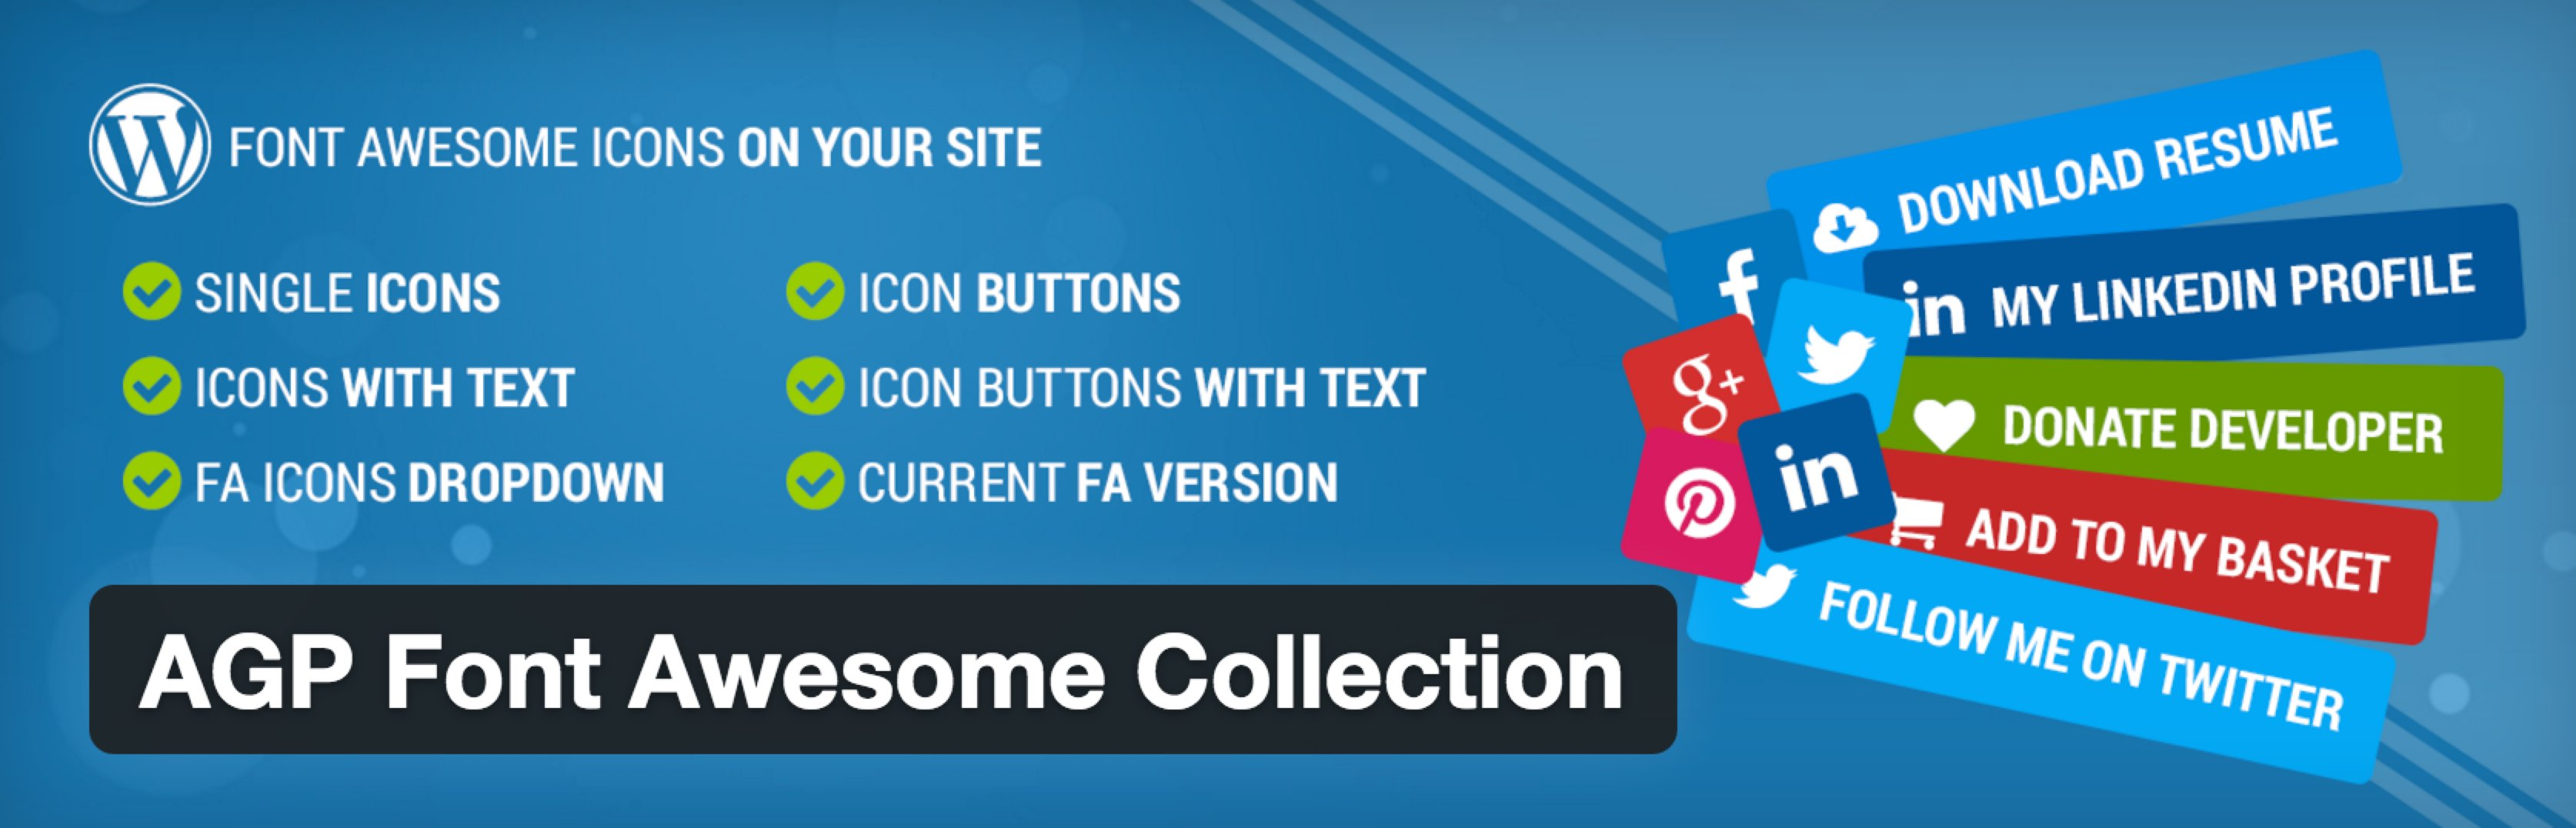 AGP Font Awesome Collection PlugIn